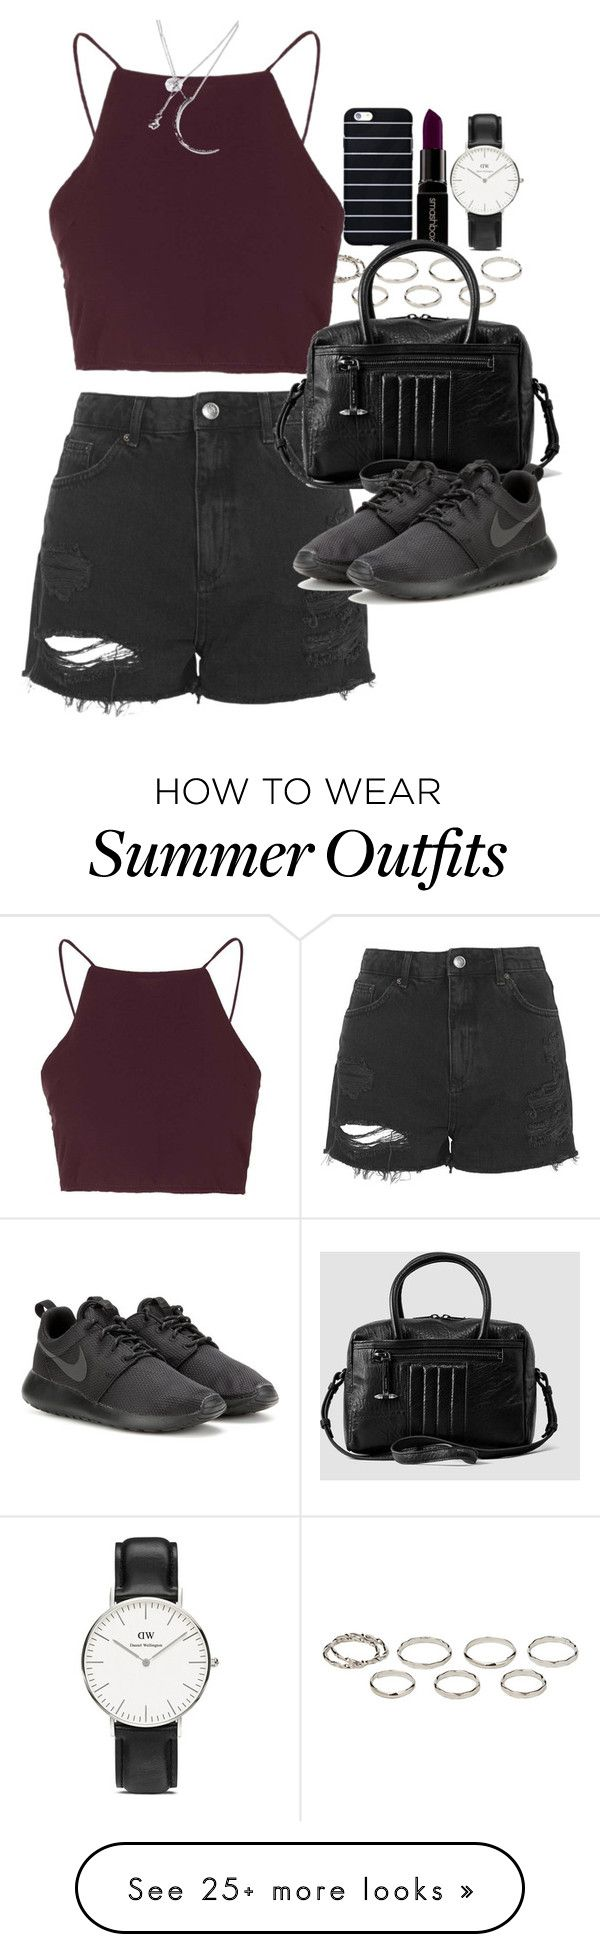 """Outfit for summer with shorts"" by ferned on Polyvore featuring Smashbox, Akira, Topshop, AllSaints, NIKE, Daniel Wellington and Forever 21"